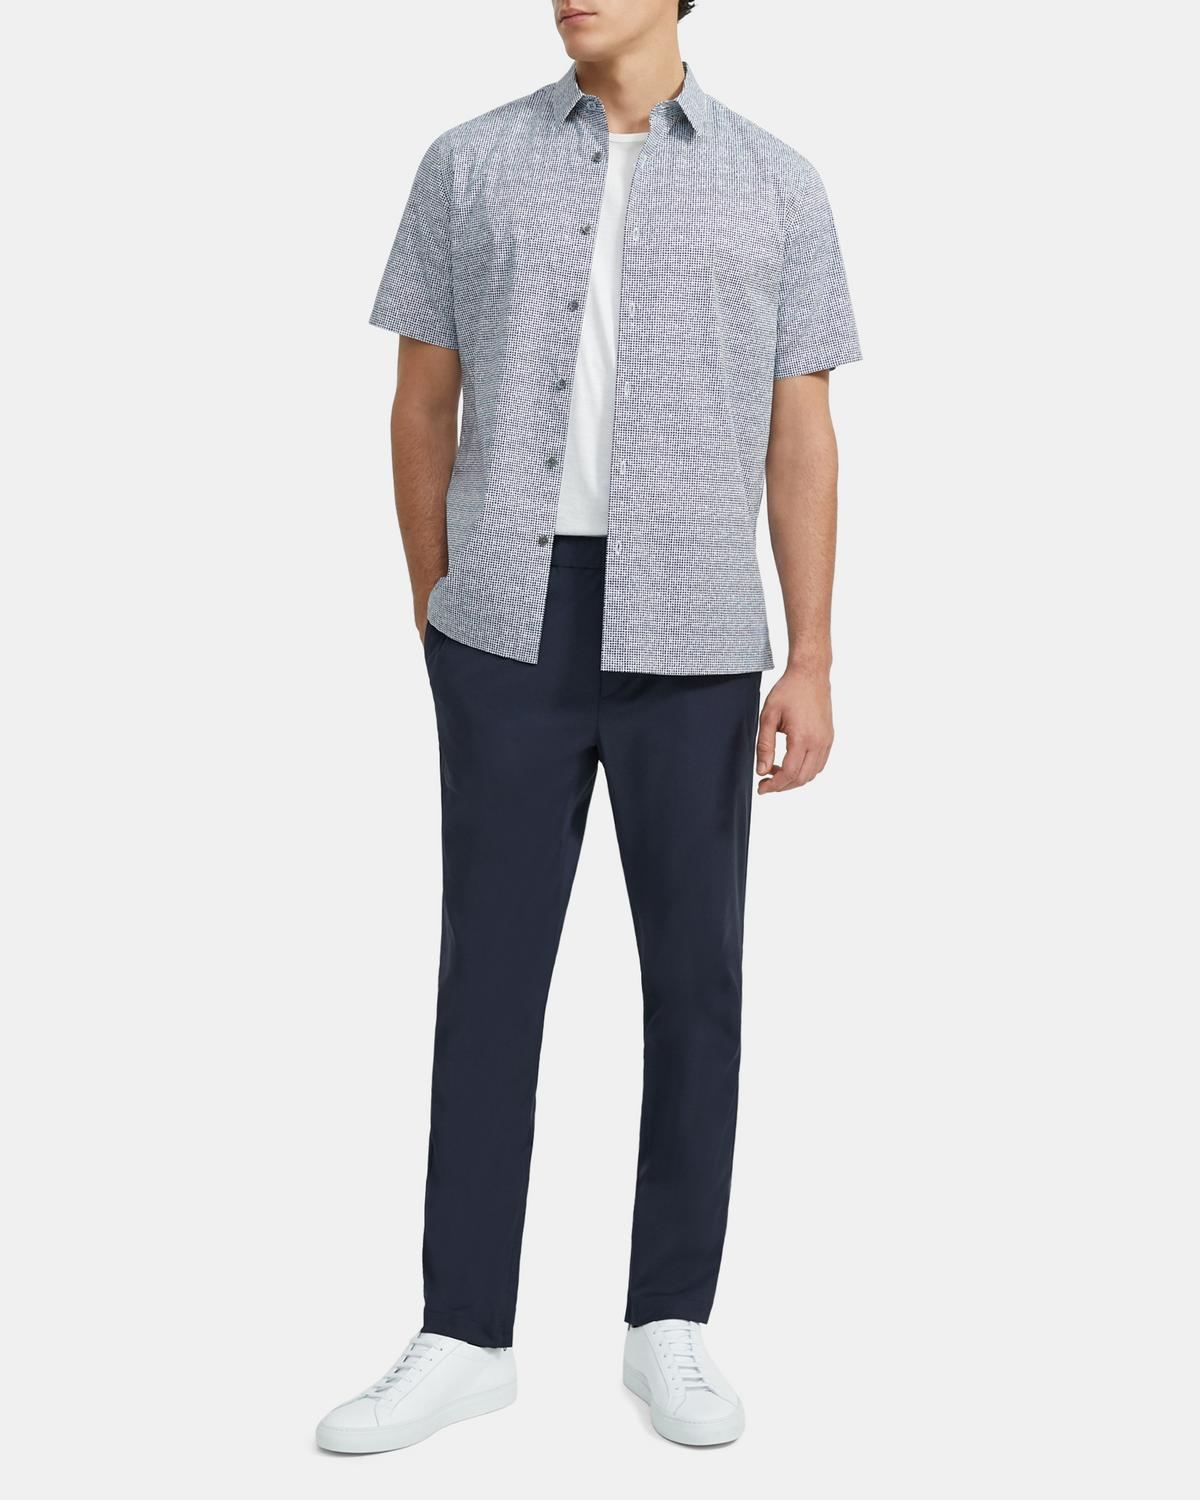 Irving Short-Sleeve Shirt in Tile Print Stretch Cotton